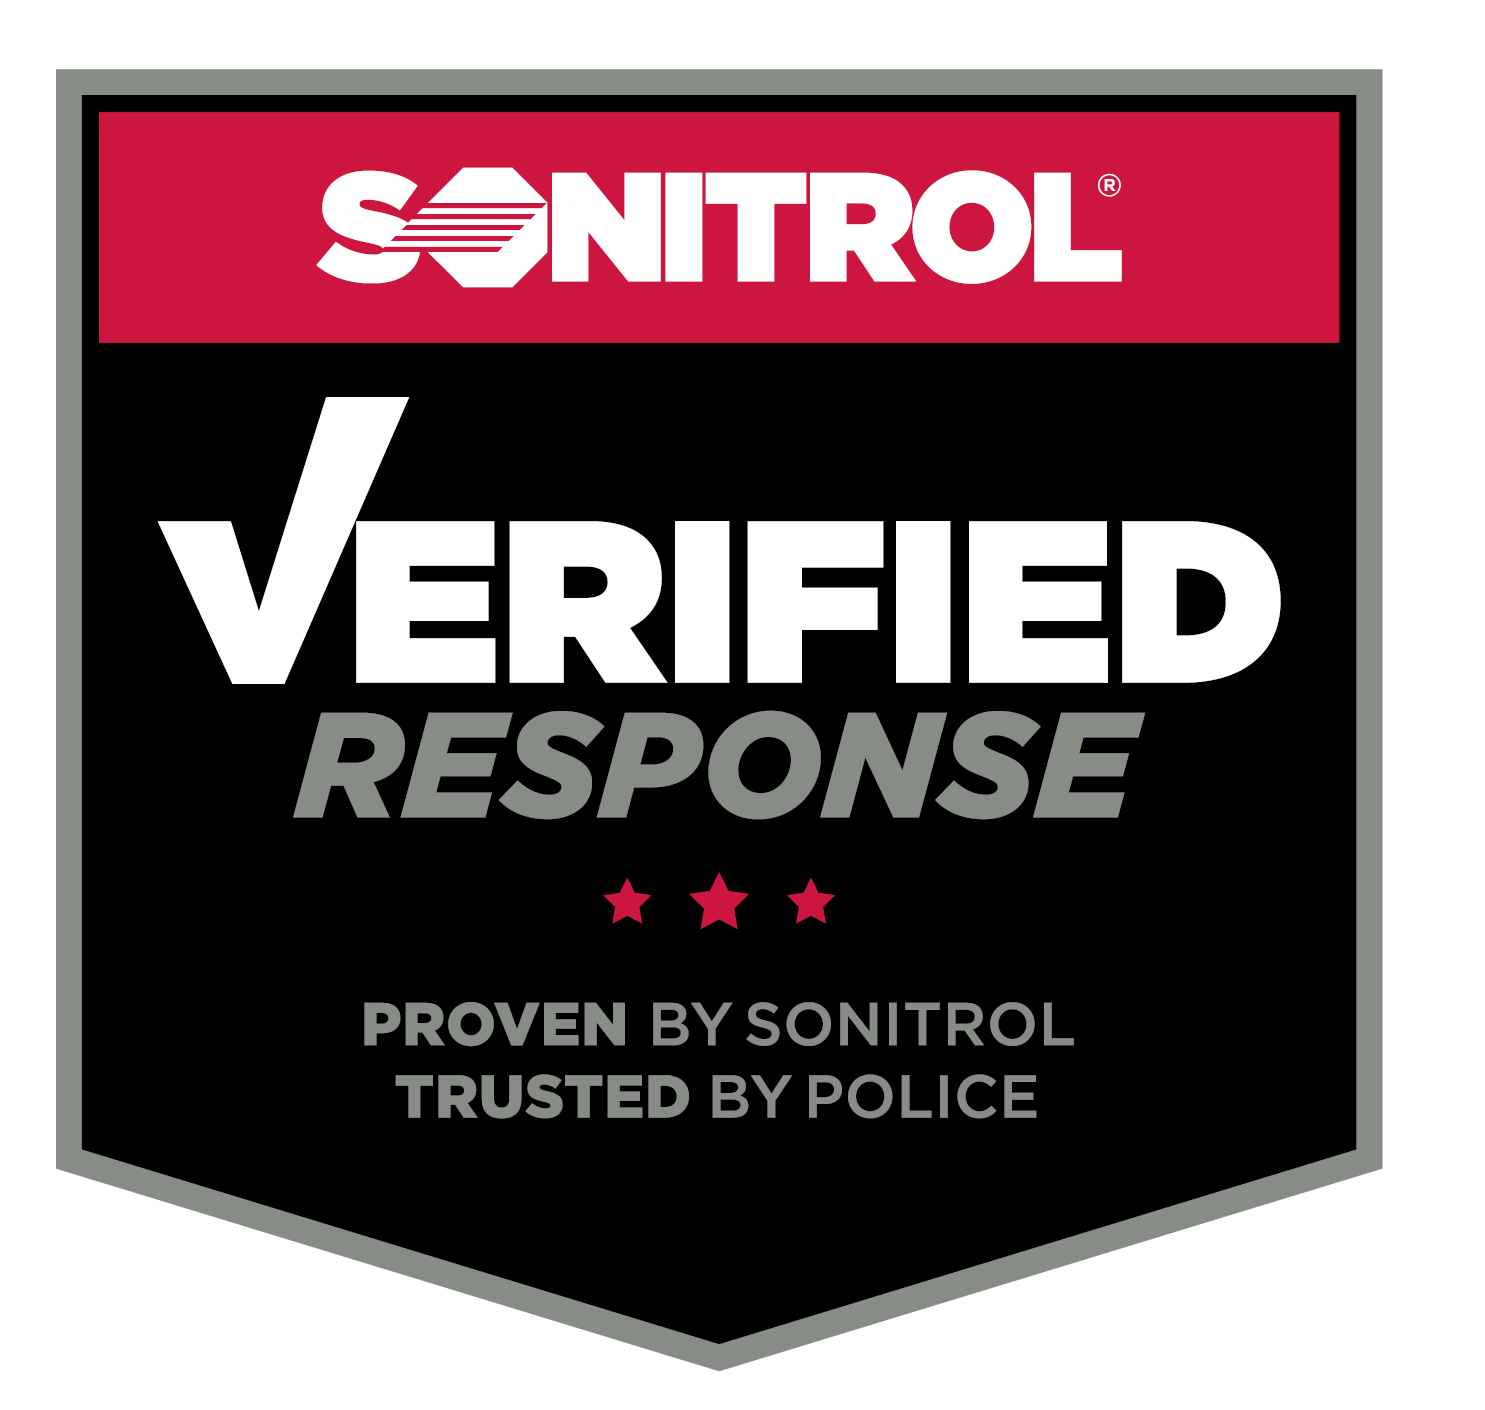 Security Systems Trusted by Police